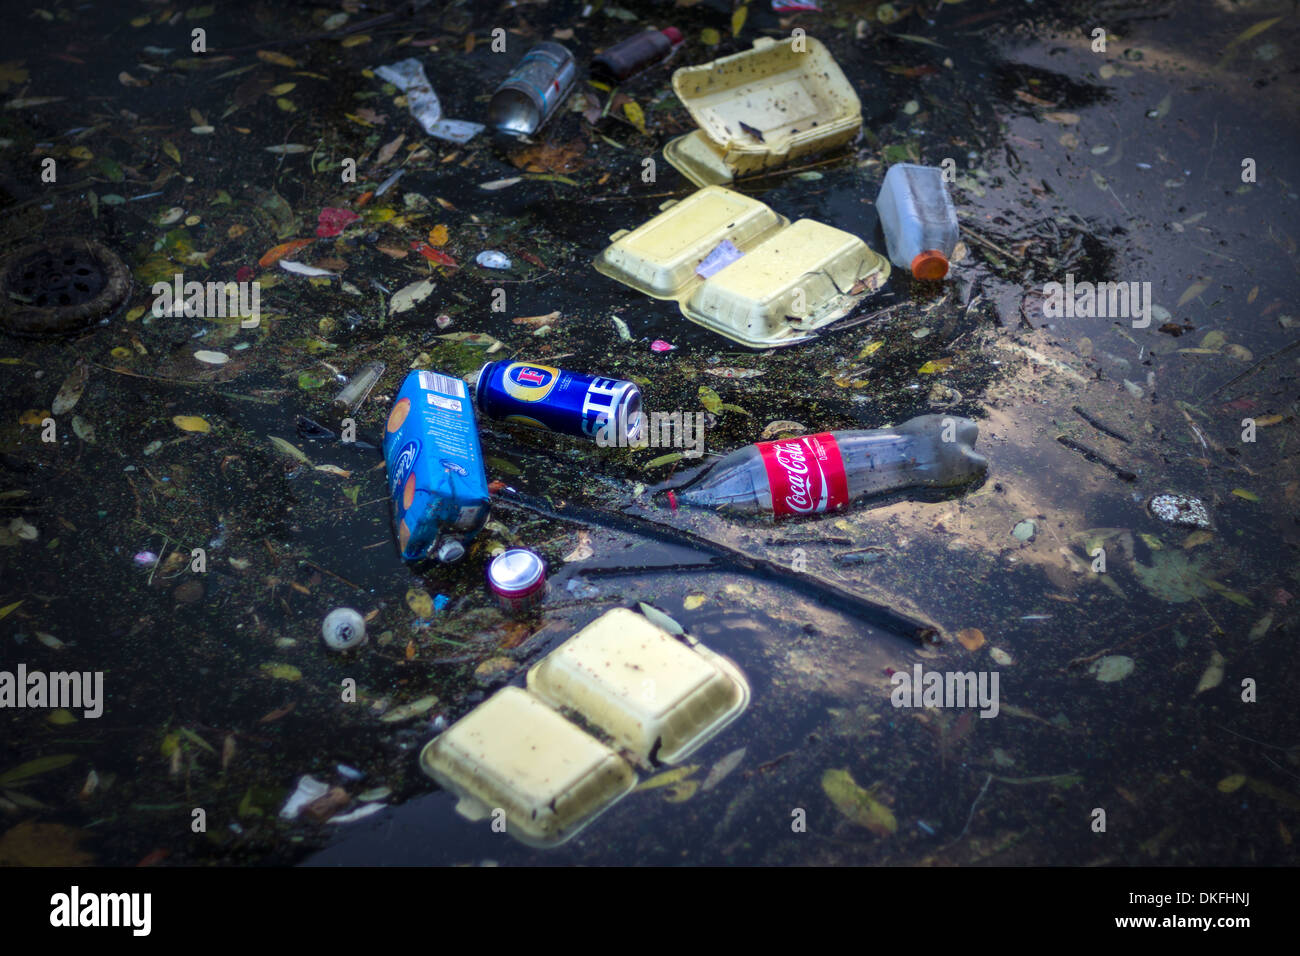 Litter chokes the Regents Canal near Islington, North London. - Stock Image